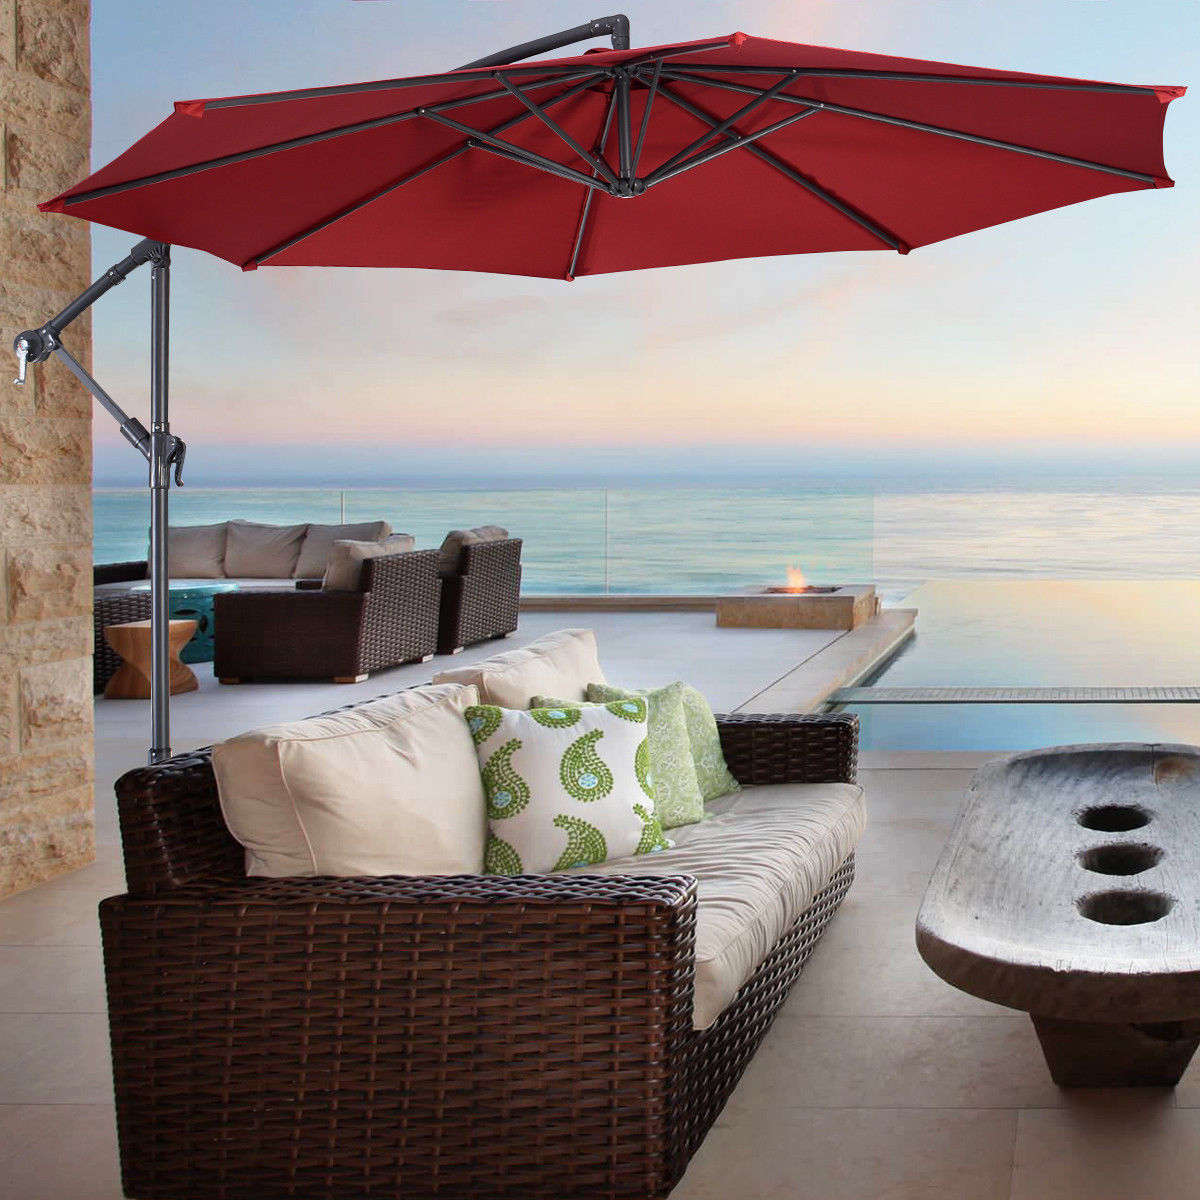 Costway 10' Hanging Umbrella Patio Sun Shade Offset Outdoor Market W/t Cross Base (Burgundy)